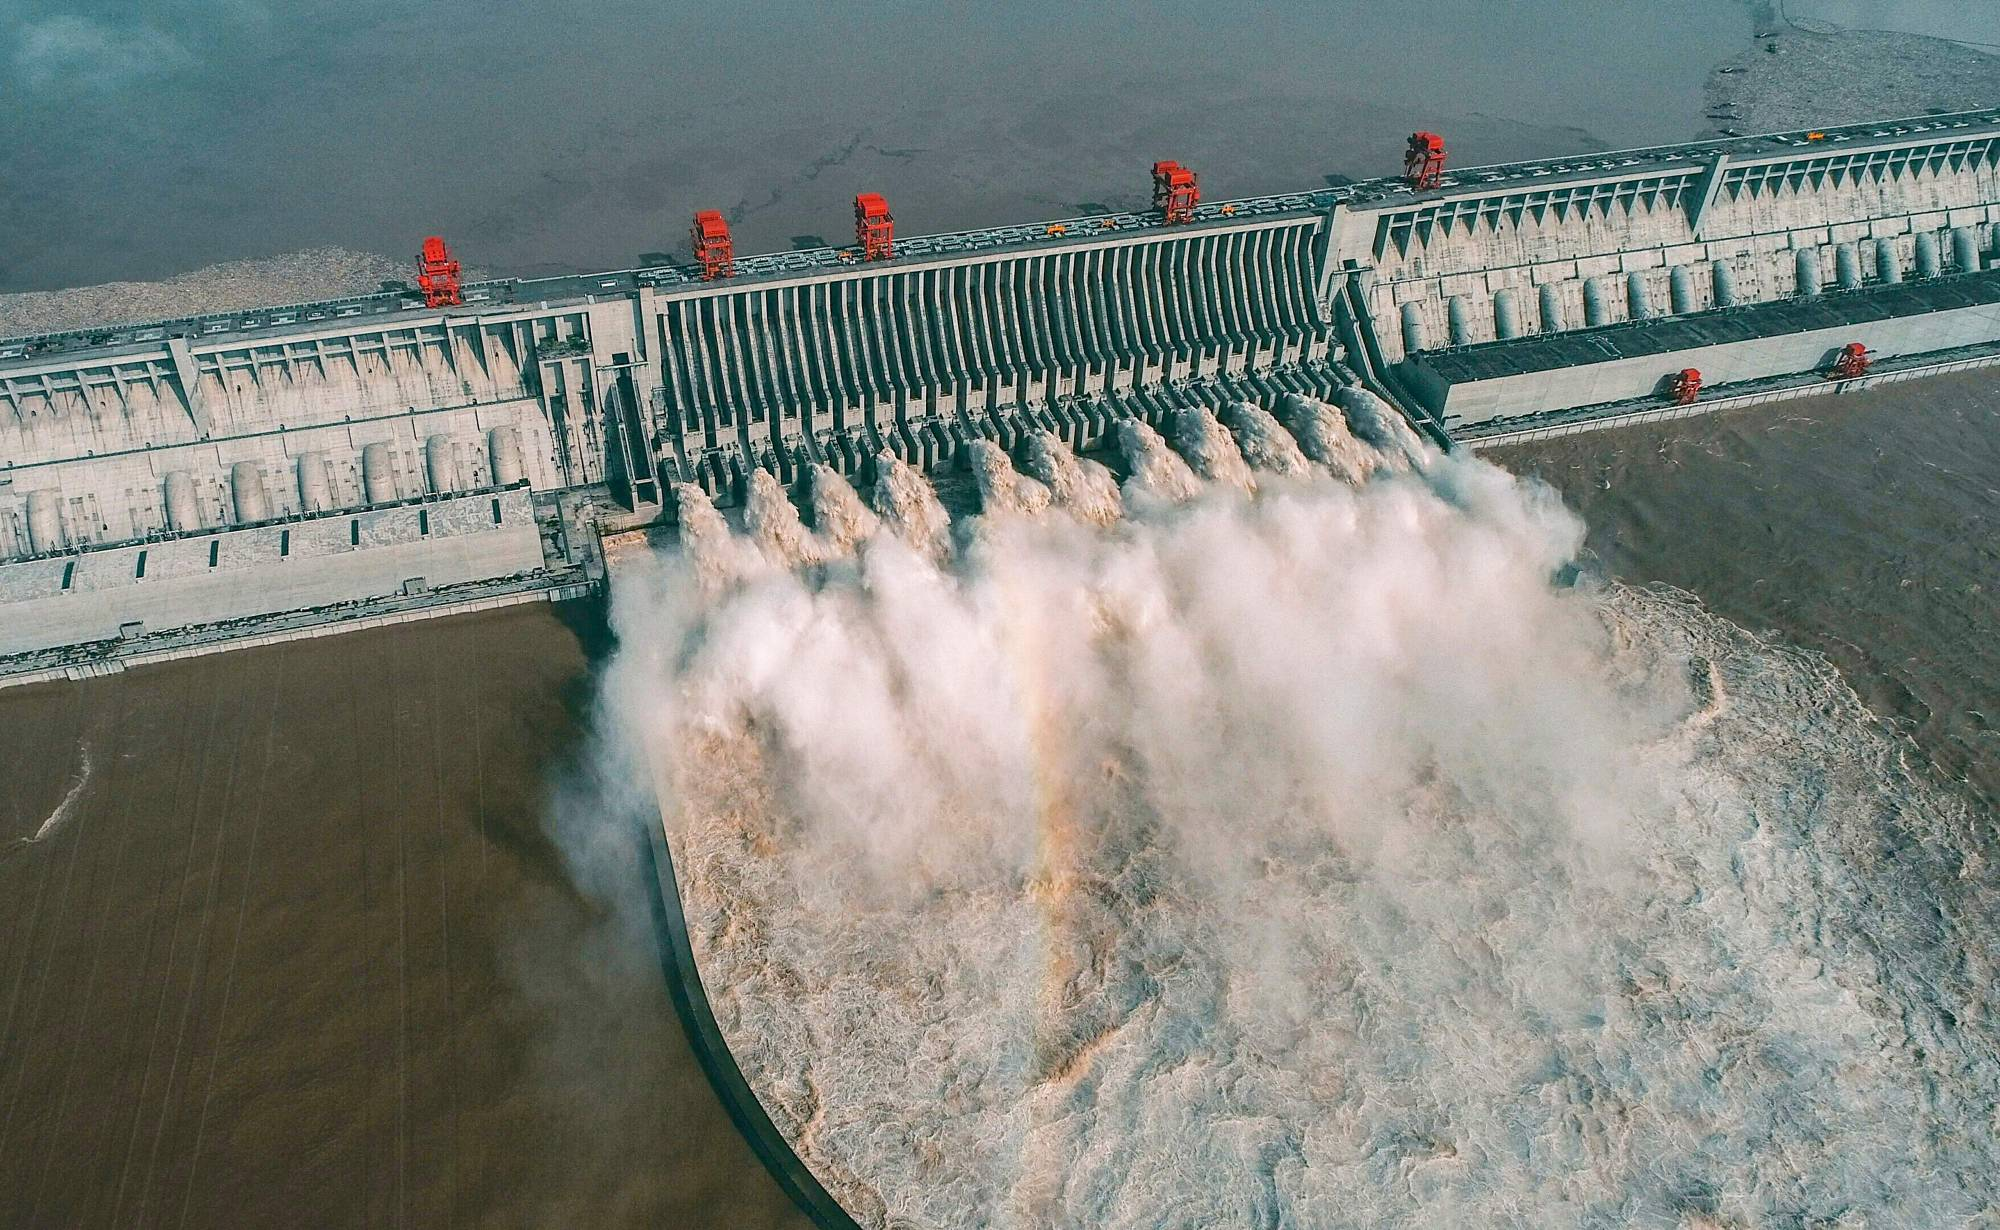 This aerial photo taken on Aug. 23 shows water being released from China's Three Gorges Dam in Yichang, Hubei province. | AFP-JIJI